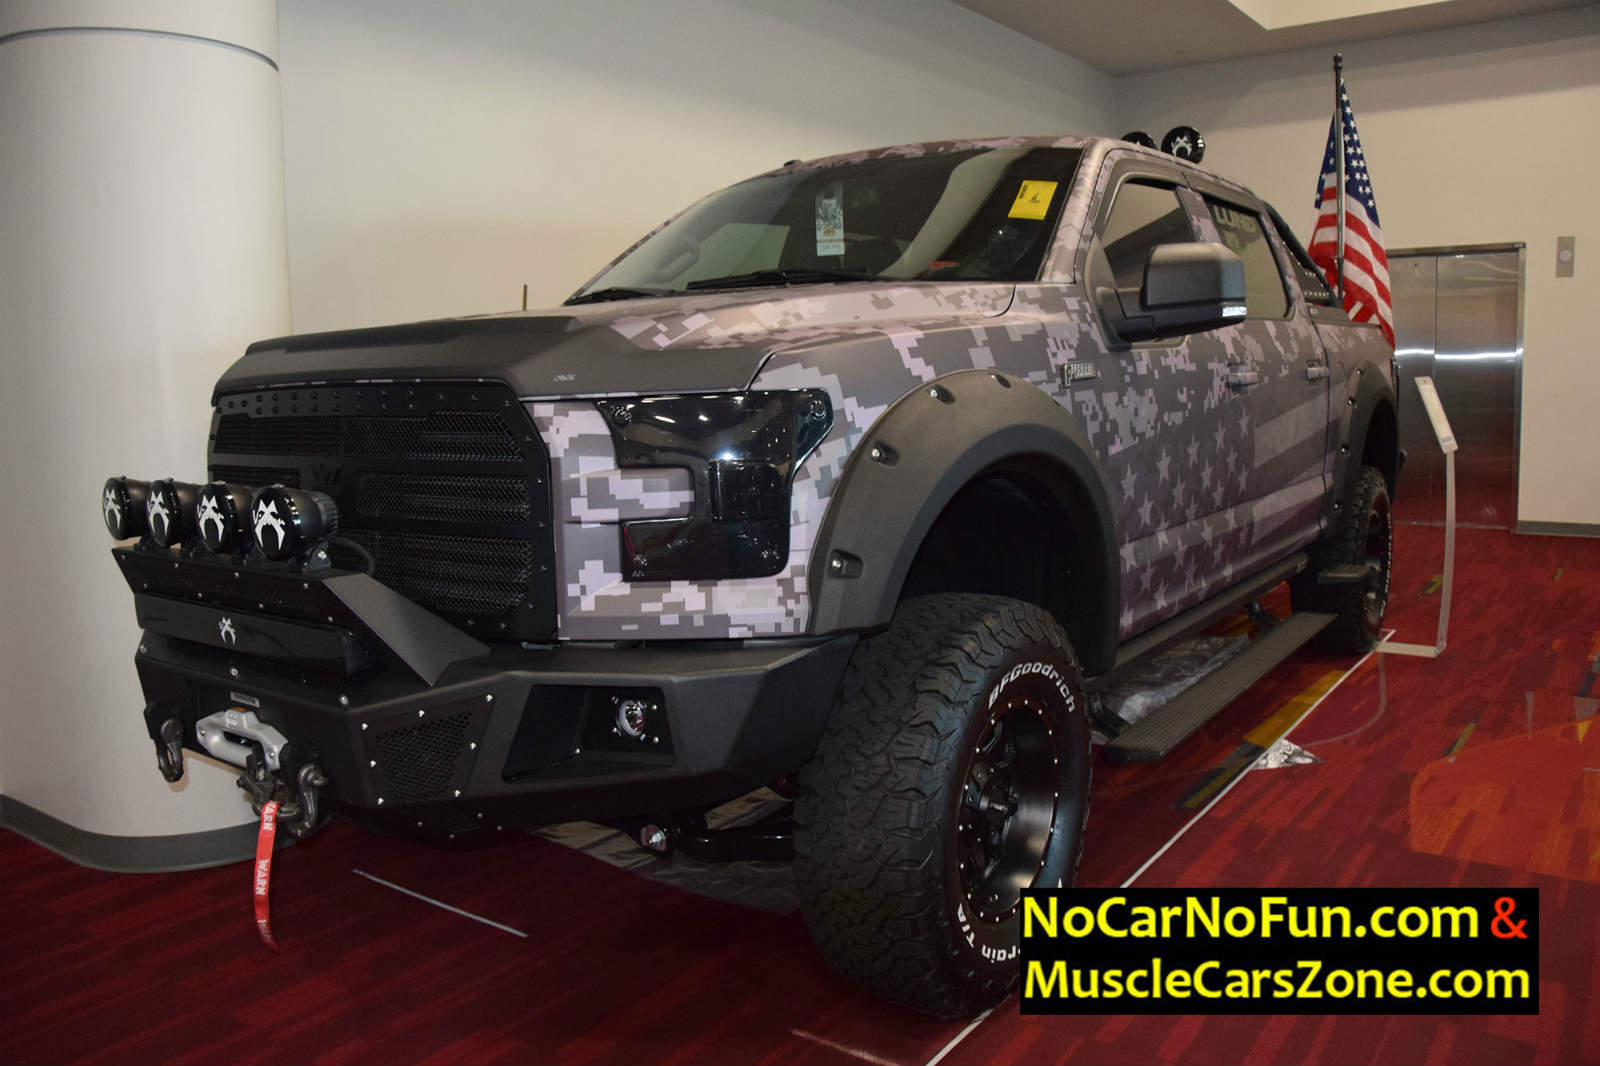 This $1.8 billion automotive plant is one of the most advanced assembly plants in north america. grey-custom-truck-with-american-flag-paint-job-at-sema